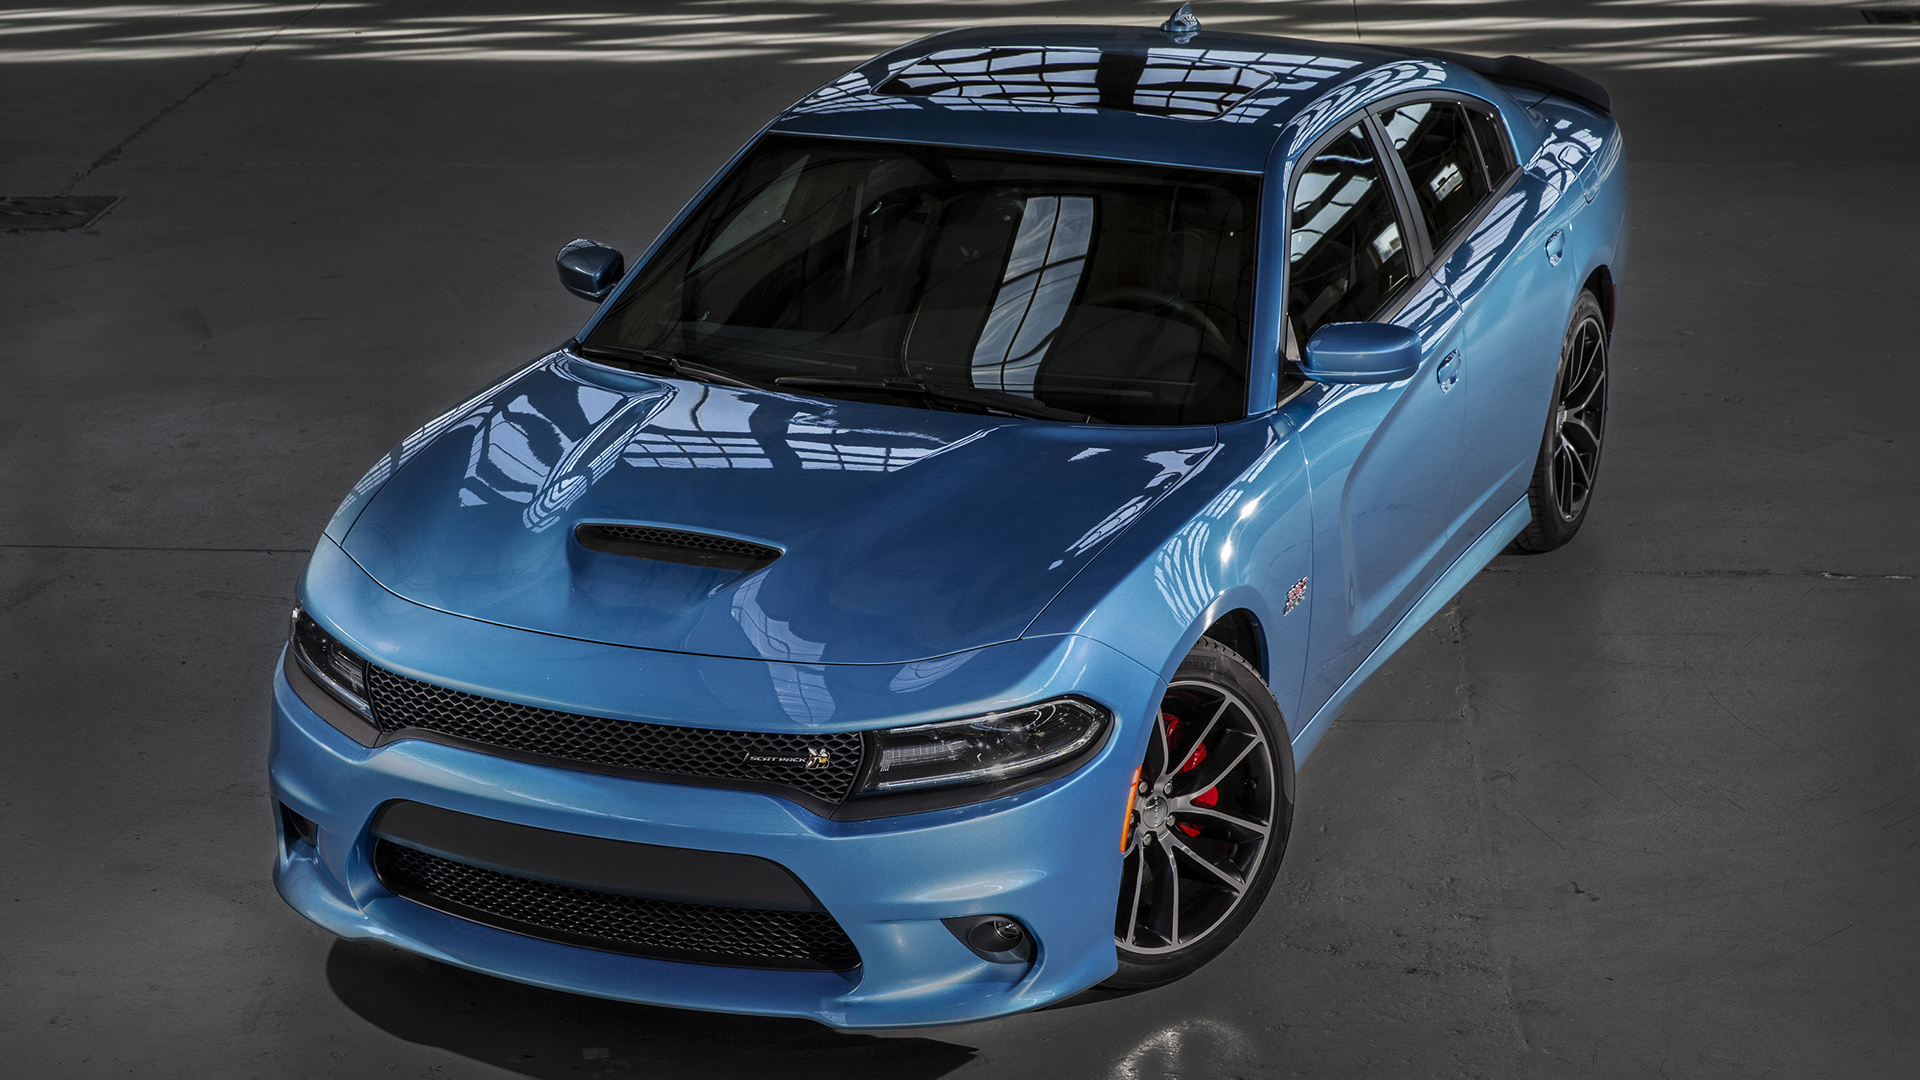 Lotus Car Wallpaper 2015 Dodge Charger R T Scat Pack Wallpapers And Hd